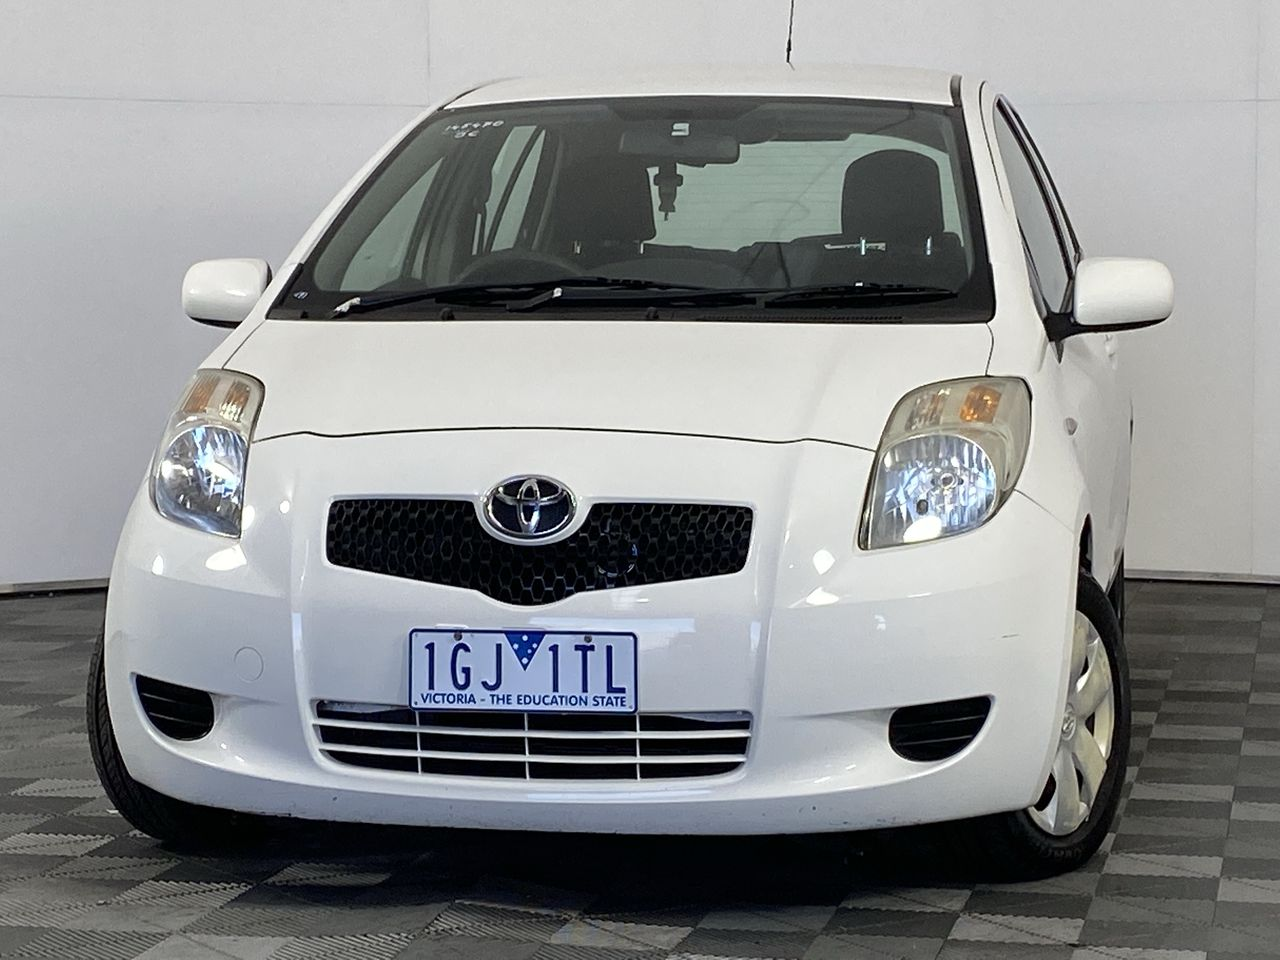 2006 Toyota Yaris YR NCP90R Automatic Hatchback (WOVR Inspected)